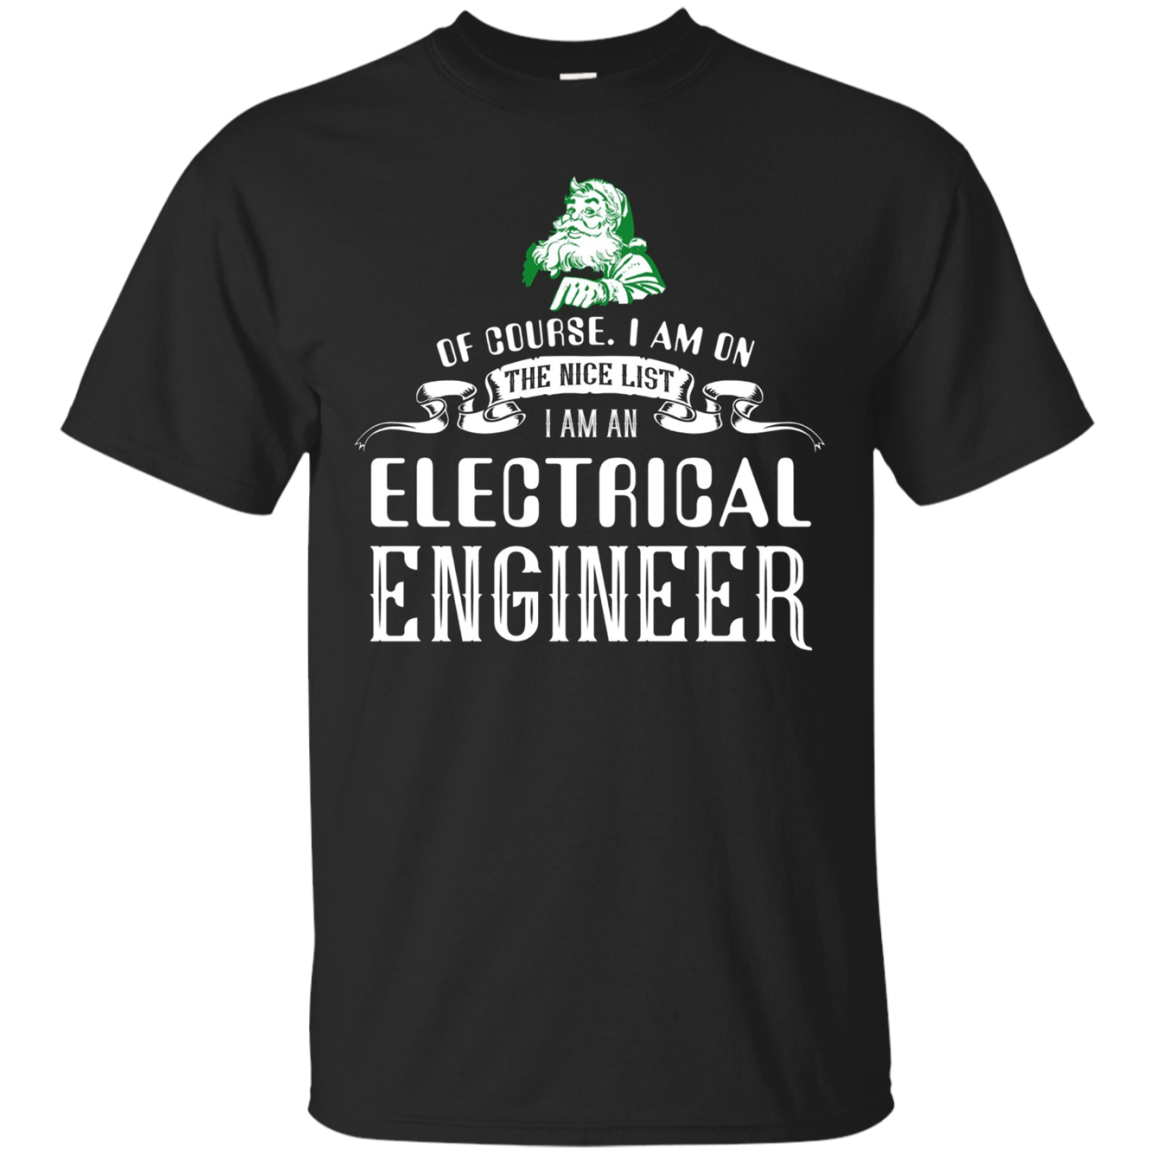 Santa Electrical Engineer Funny Tshirt on Christmas Holiday